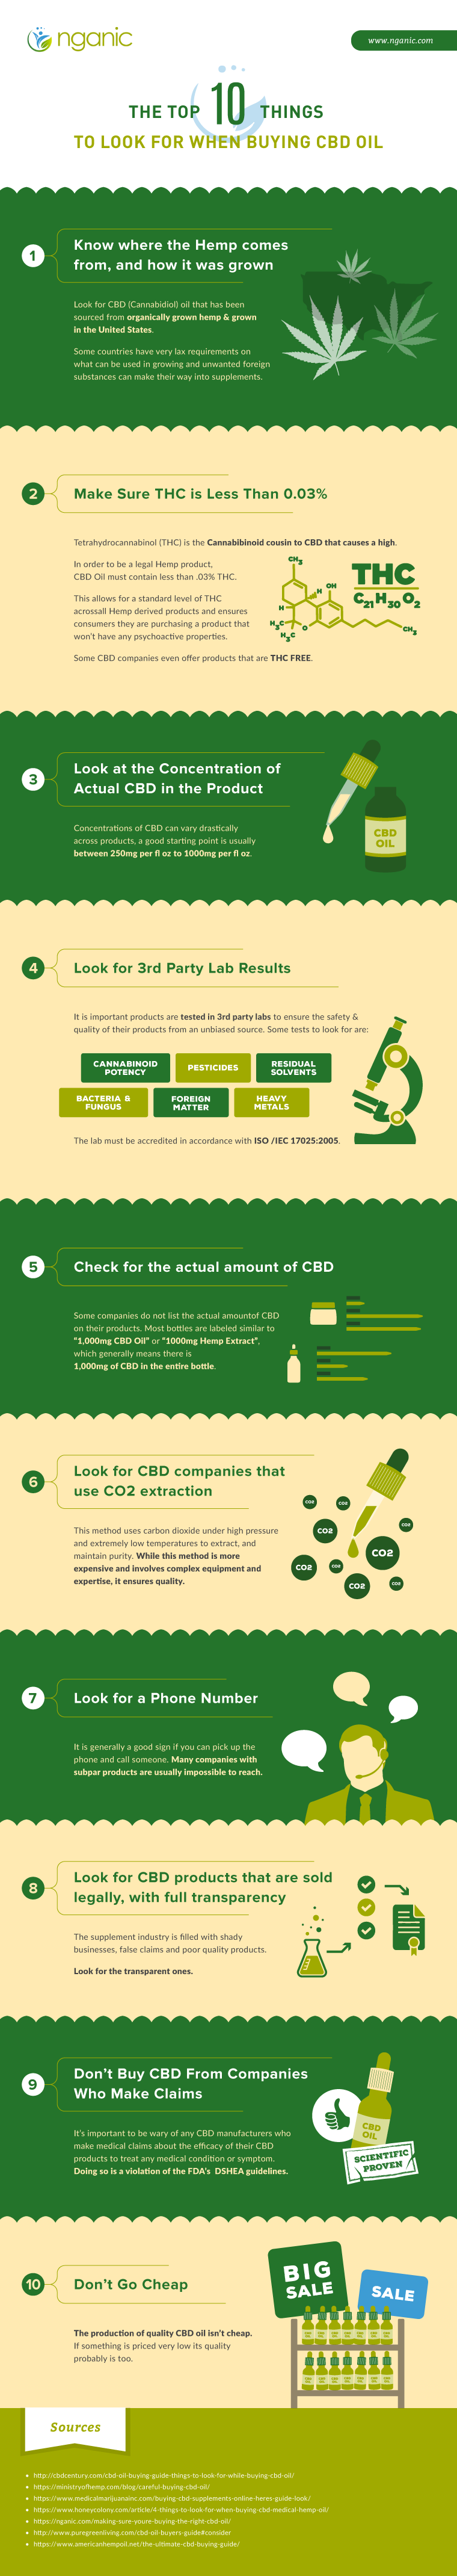 top 10 things to look for when buying CBD oil infographic